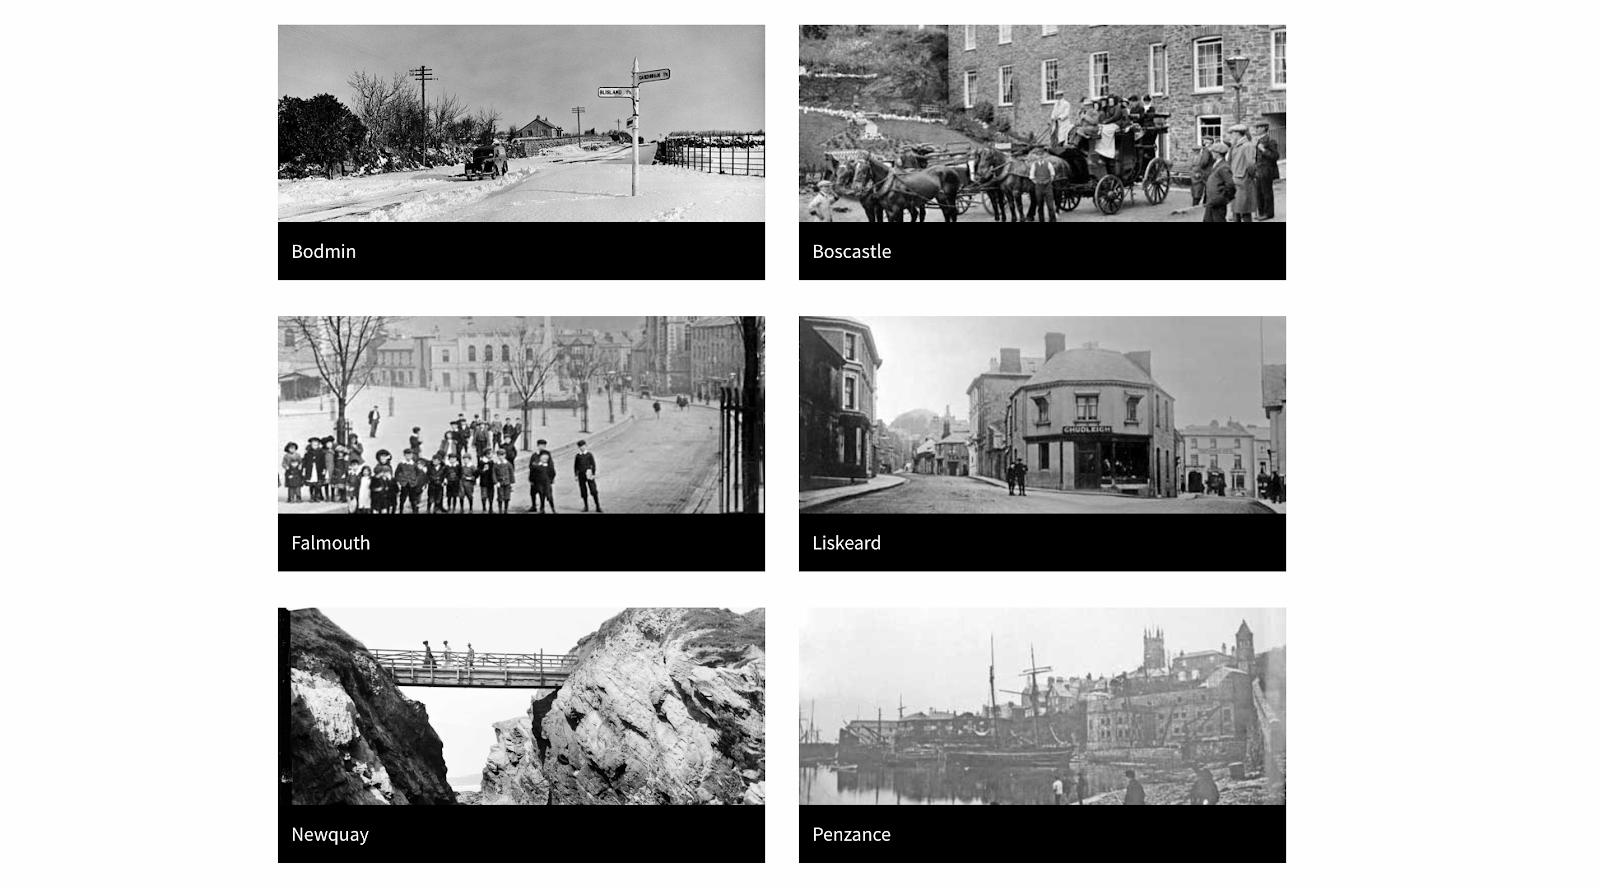 A grid of black and white images depicting places in Cornwall